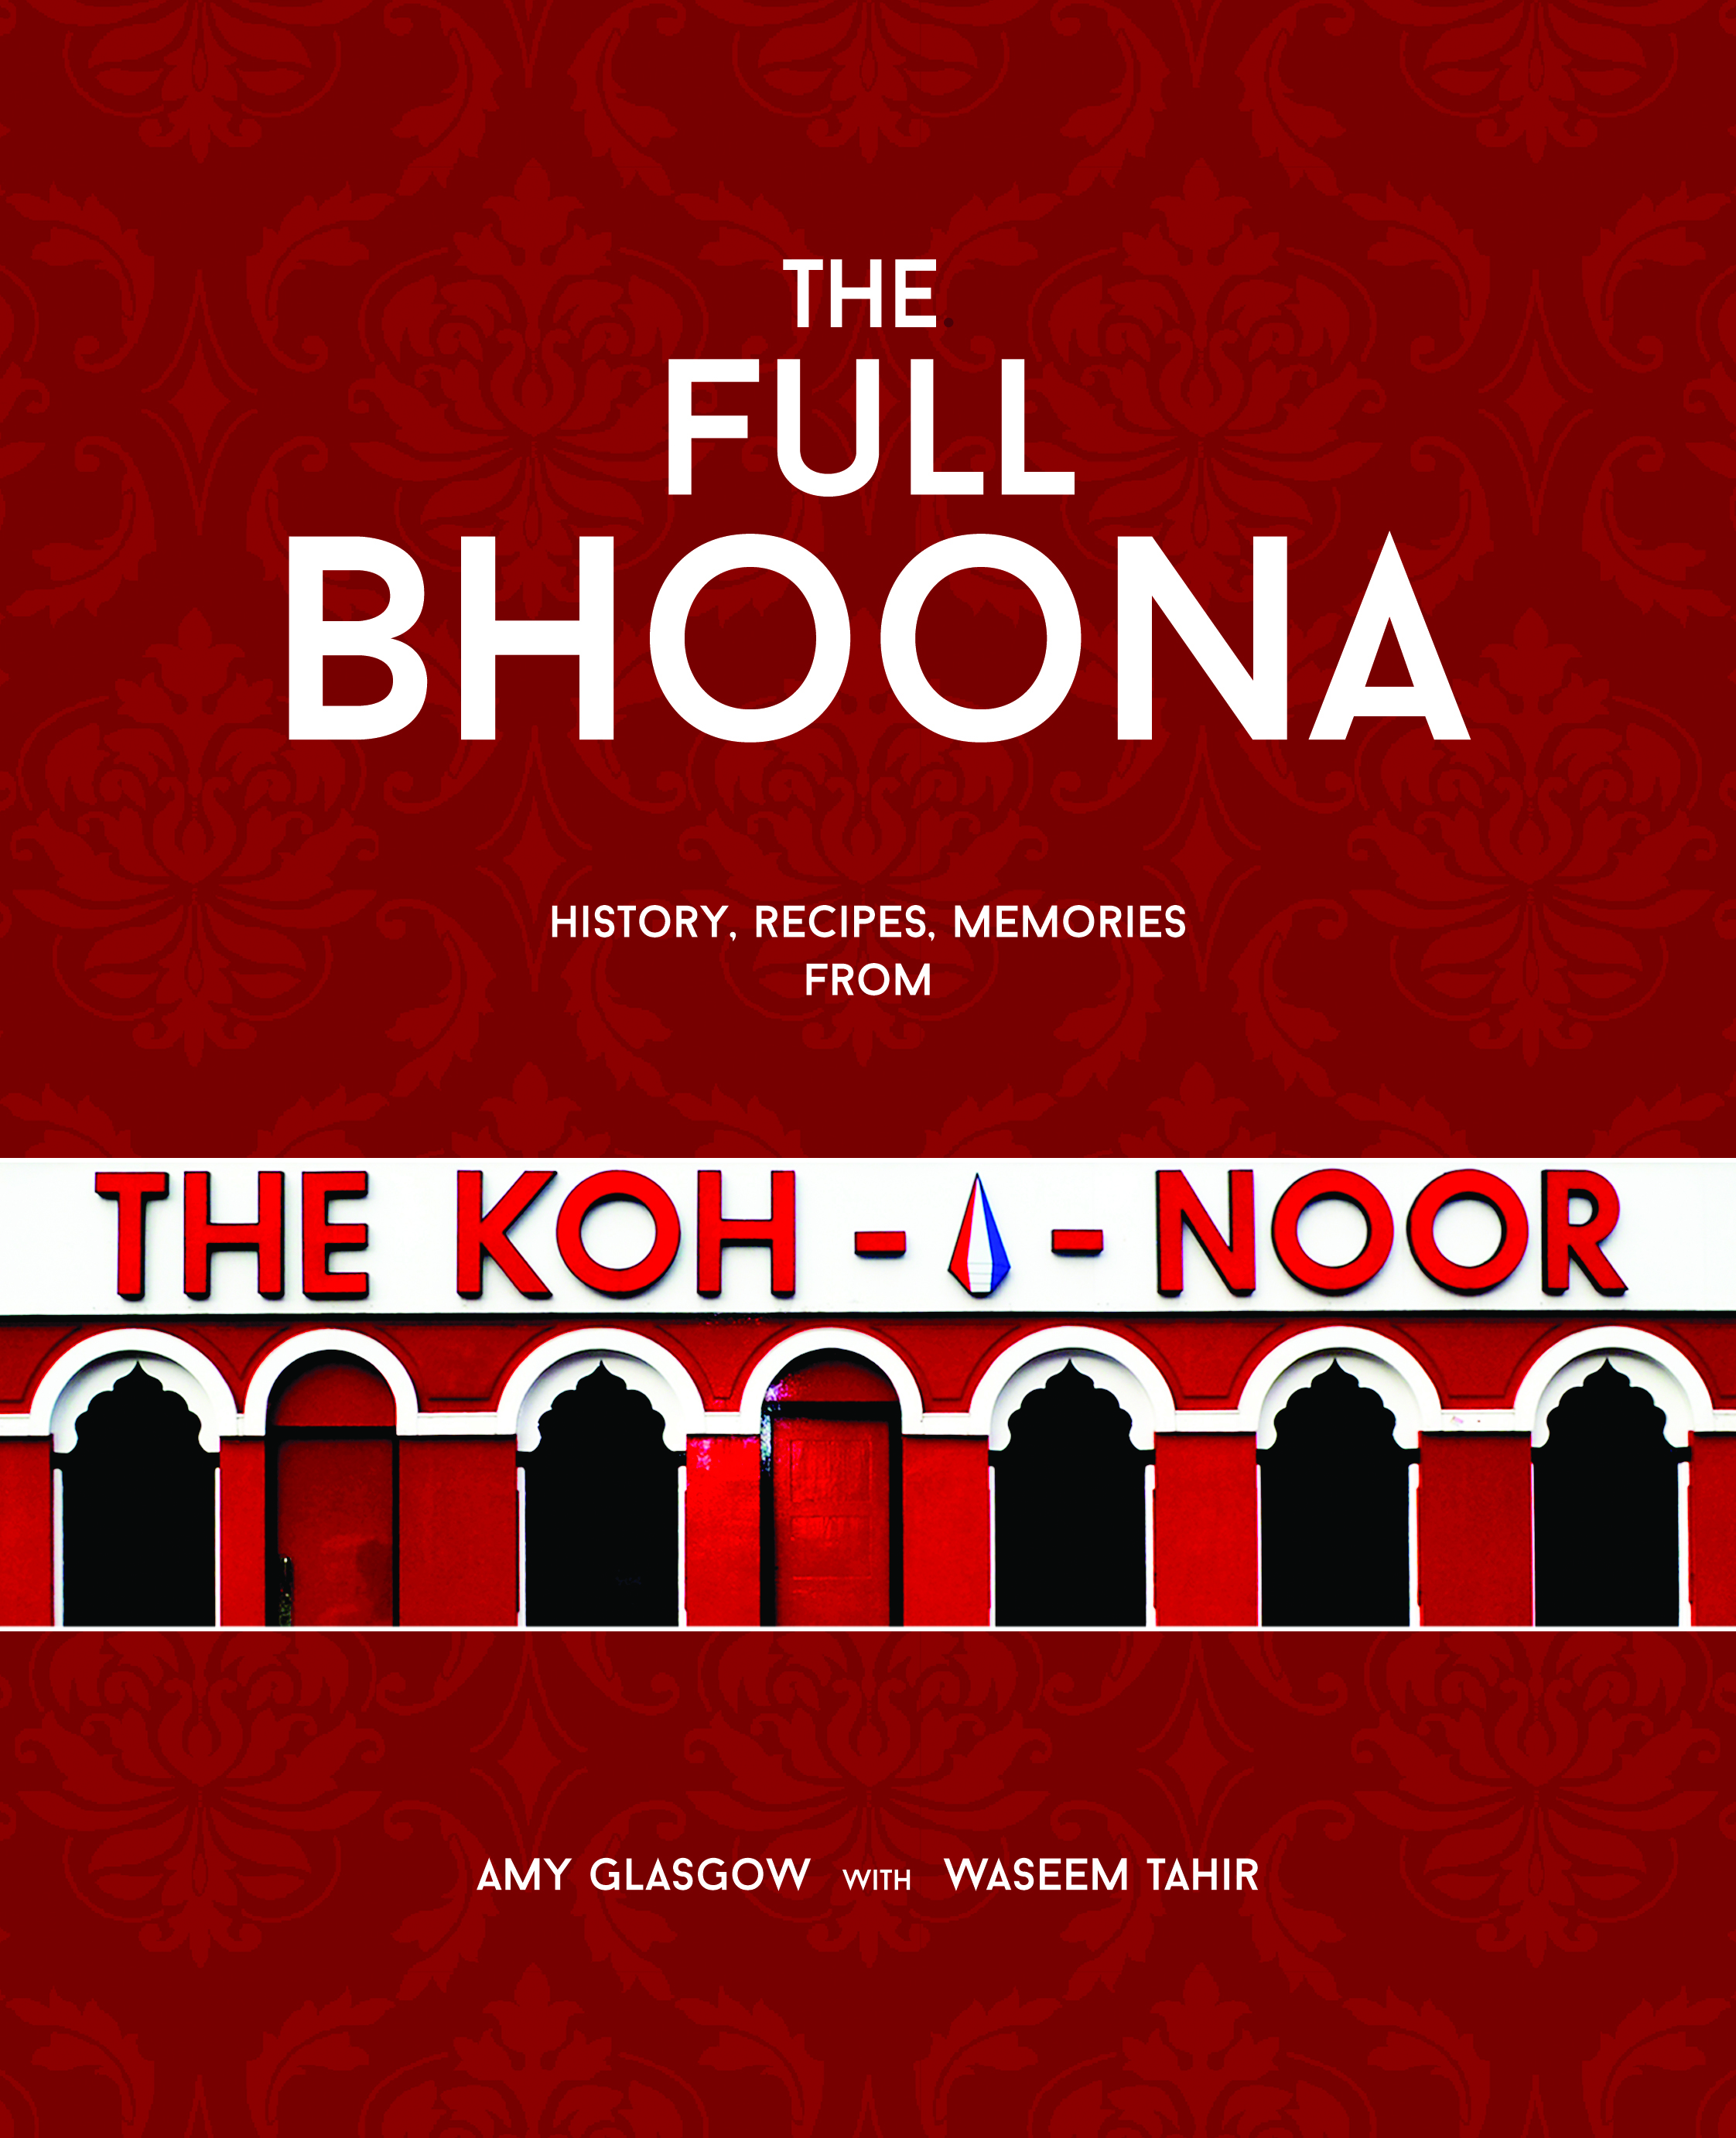 The Full Bhoona: History, Memories and Recipes